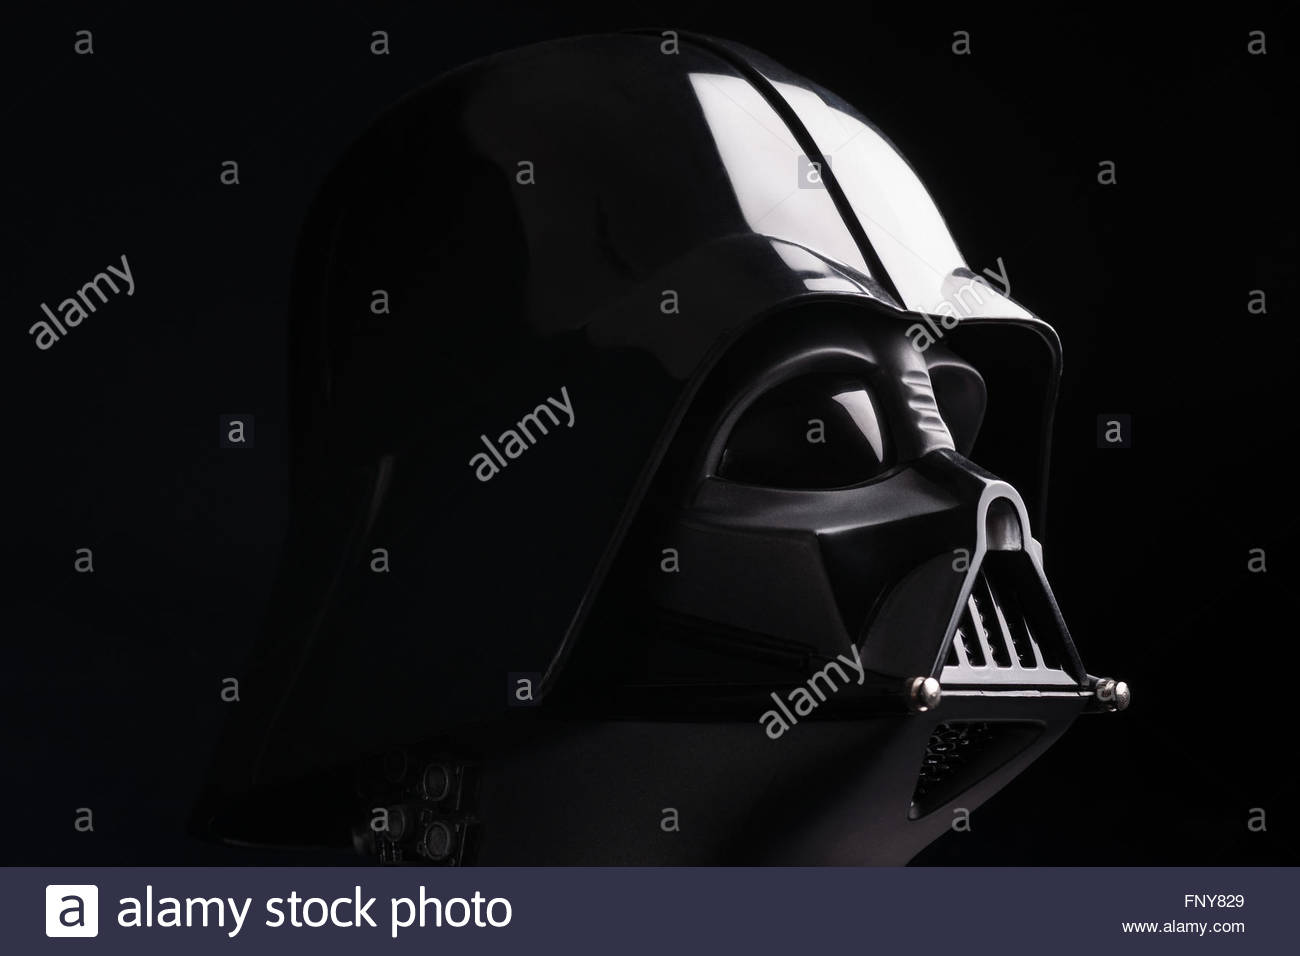 star-wars-darth-vader-helmet-replica-by-riddell-FNY829.jpg